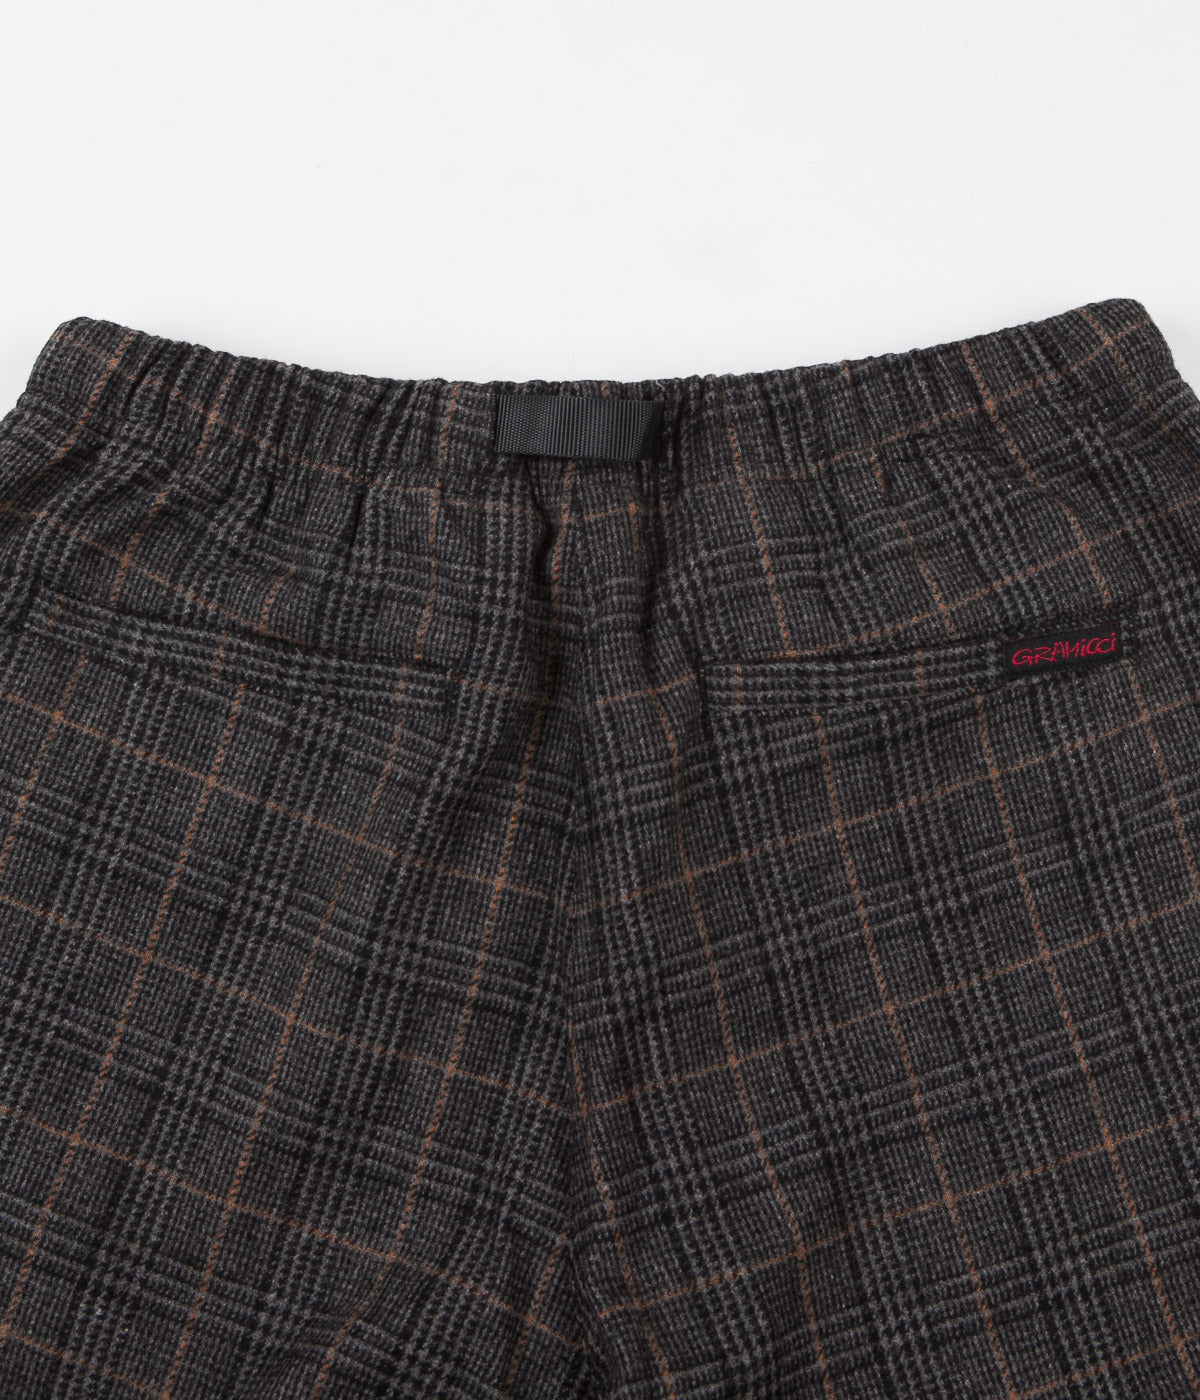 Gramicci Wool Blend Gramicci Pants - Glen Check Grey